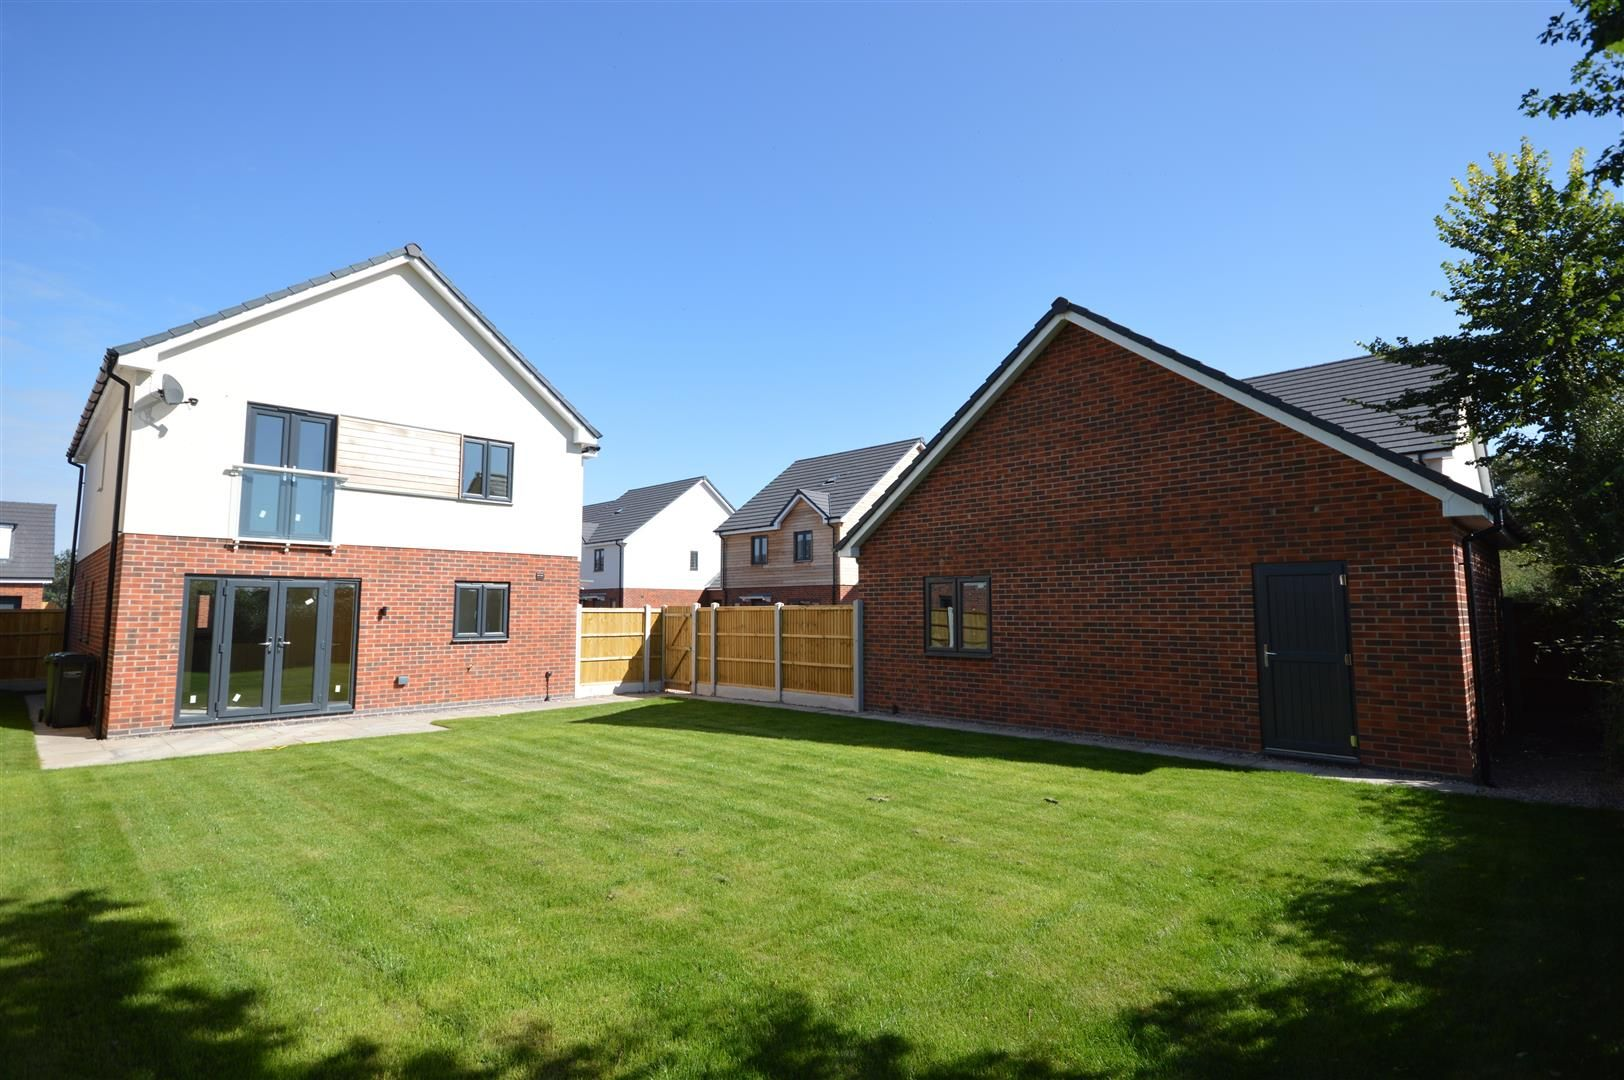 4 bed detached for sale in Kingsland  - Property Image 13